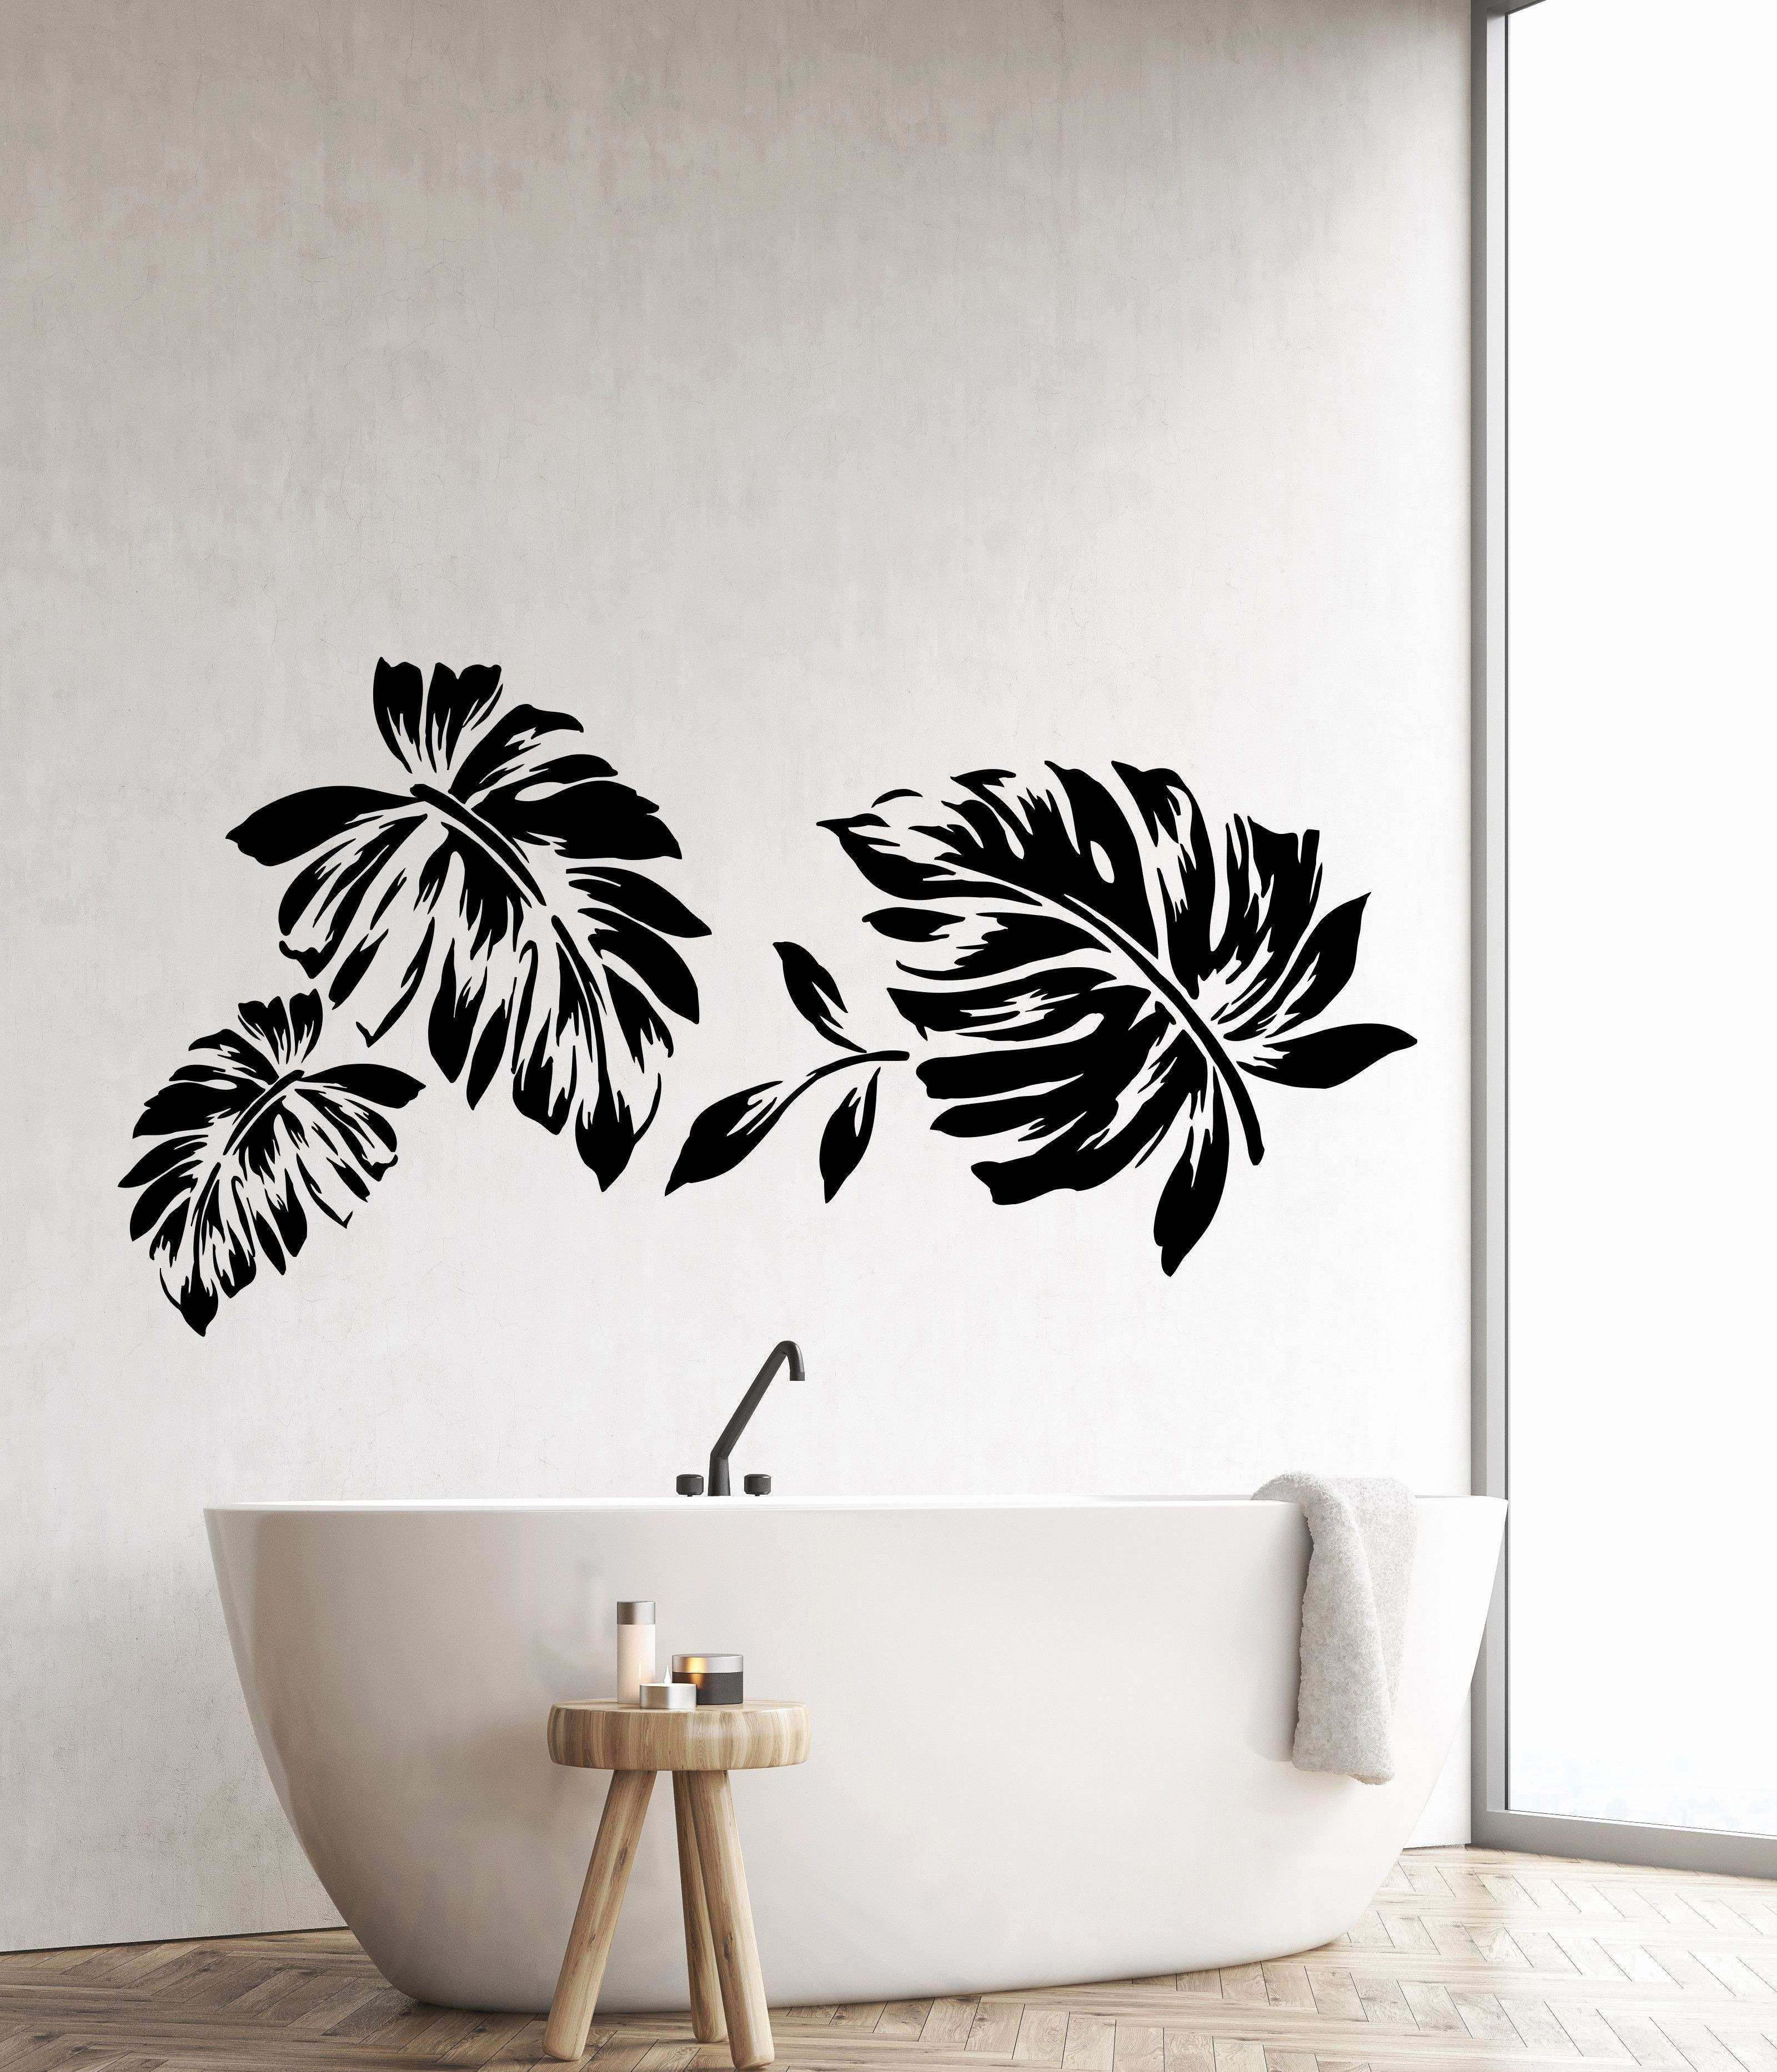 Wall Decal Luxury 1 Kirkland Wall Decor Home Design 0d Outdoor with